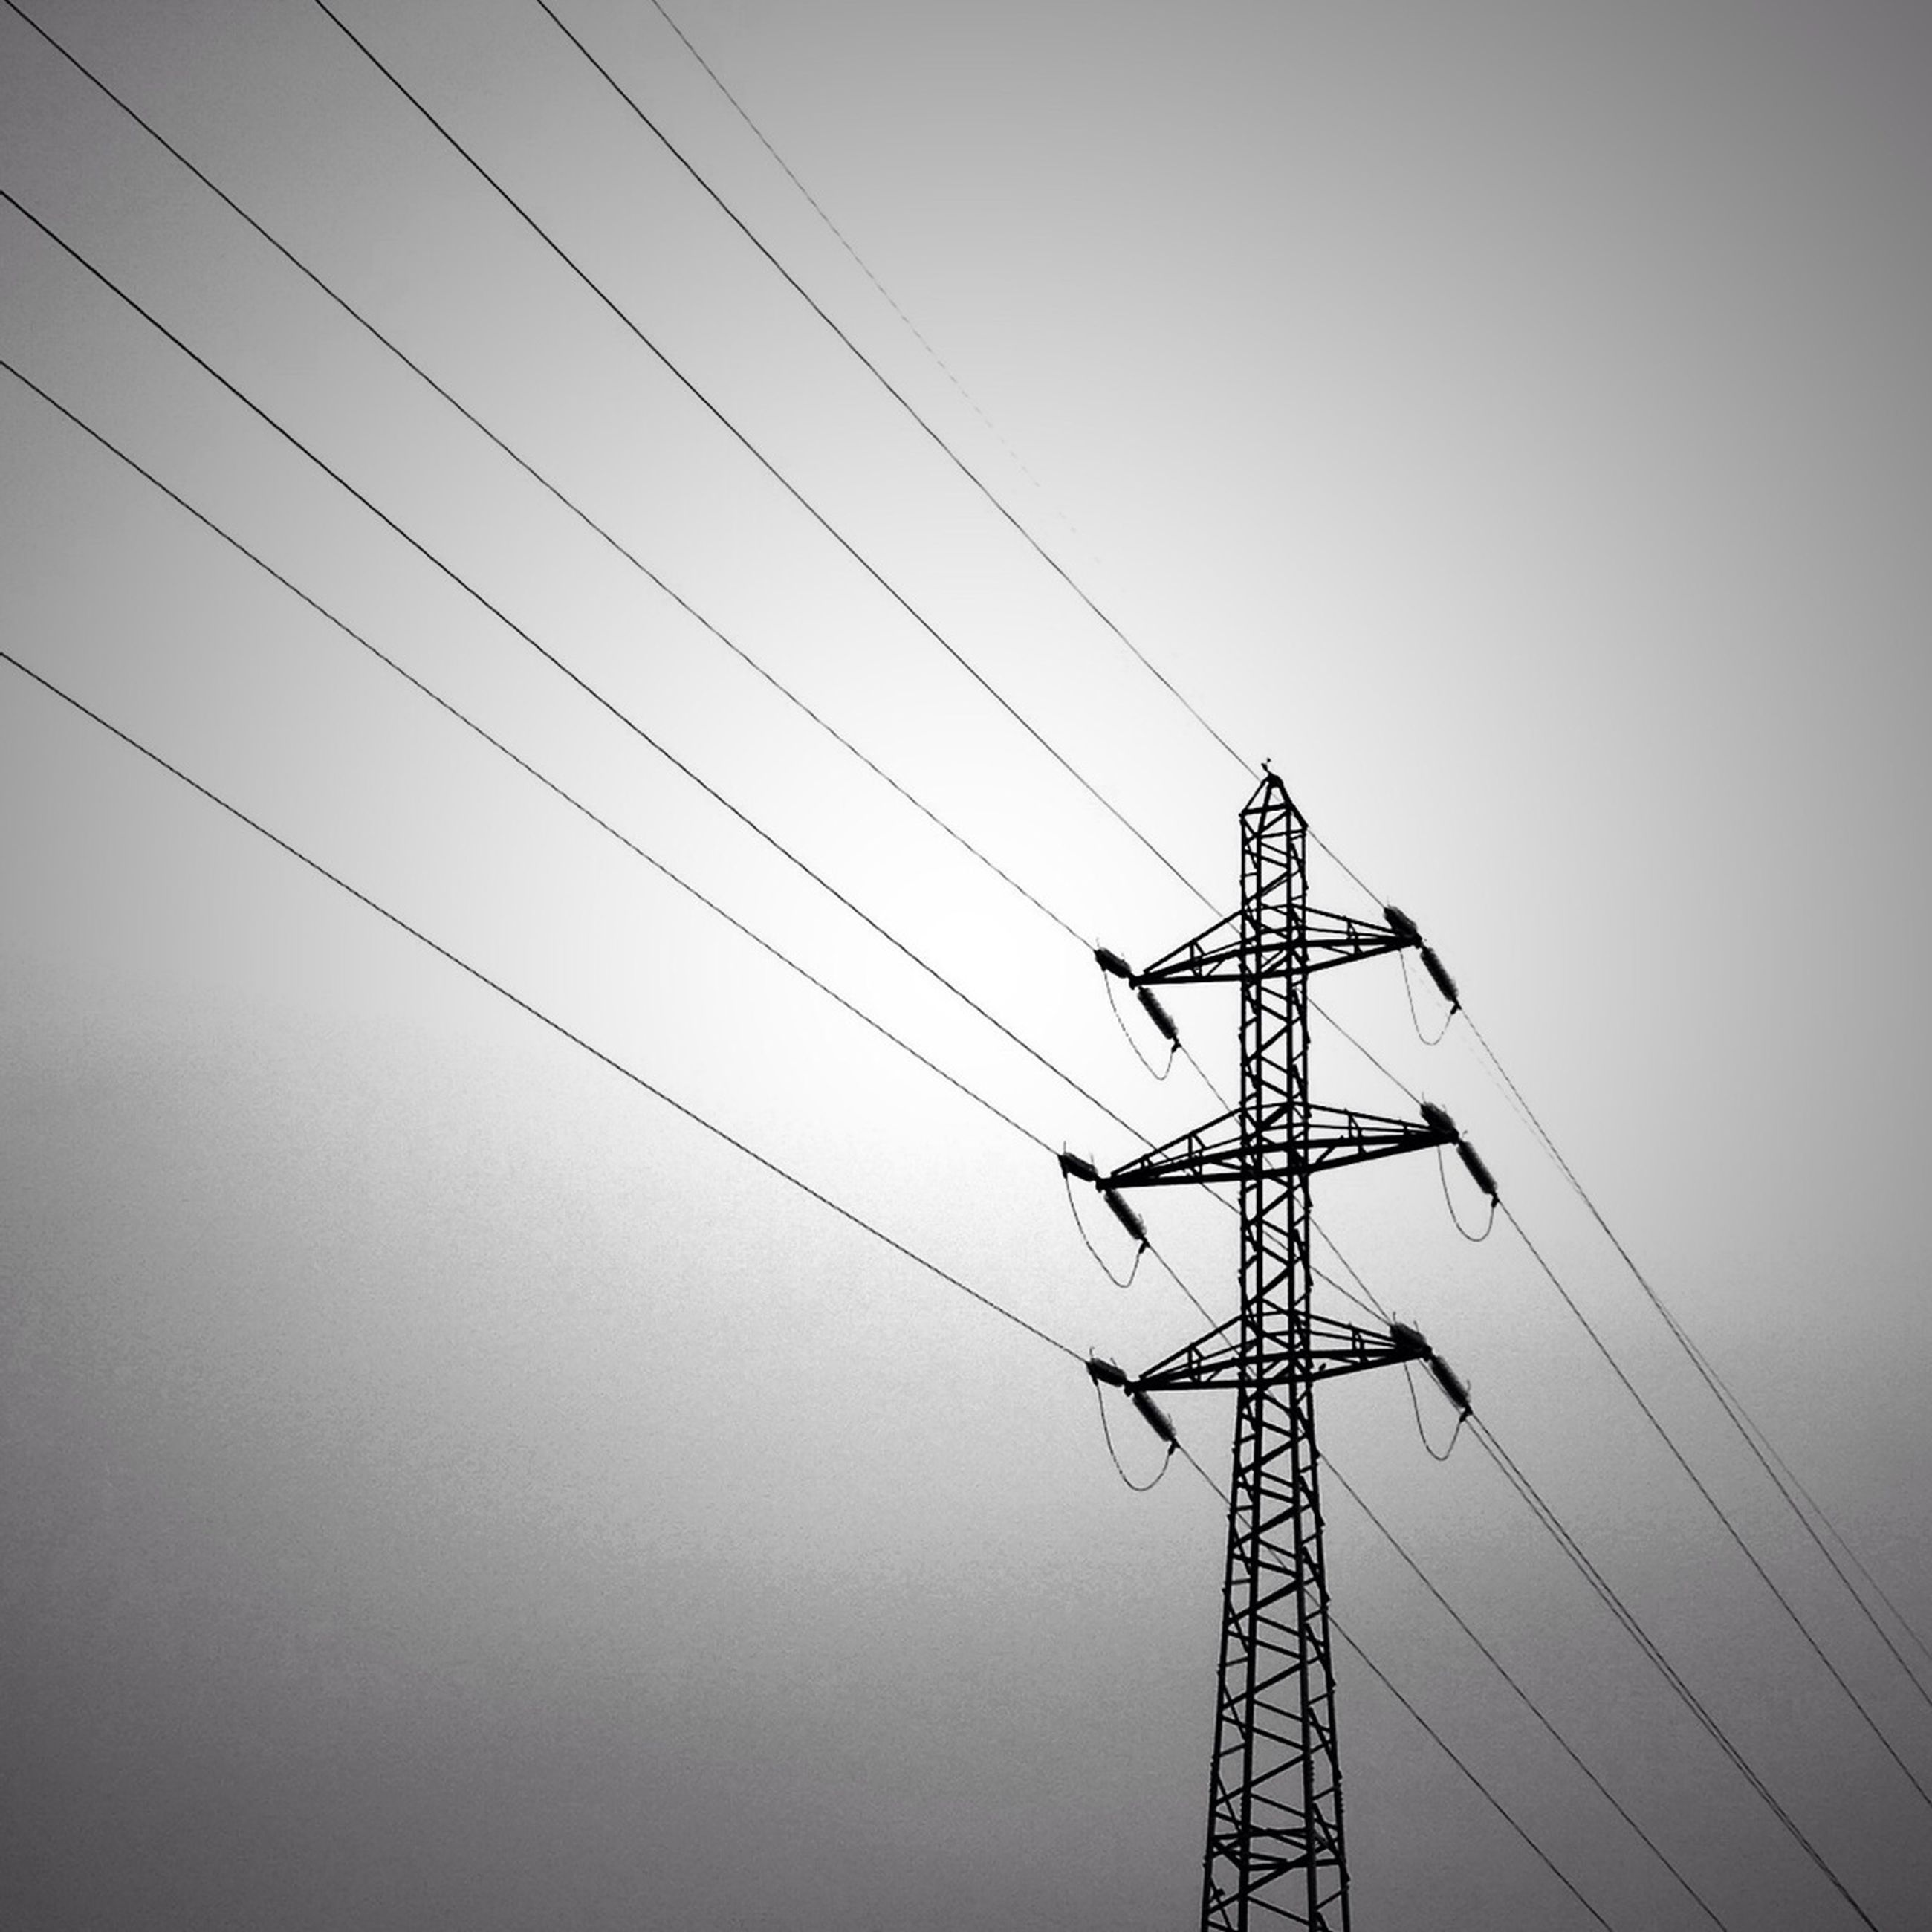 power line, power supply, electricity, electricity pylon, fuel and power generation, low angle view, connection, technology, cable, clear sky, silhouette, sky, power cable, complexity, outdoors, no people, day, electricity tower, dusk, development